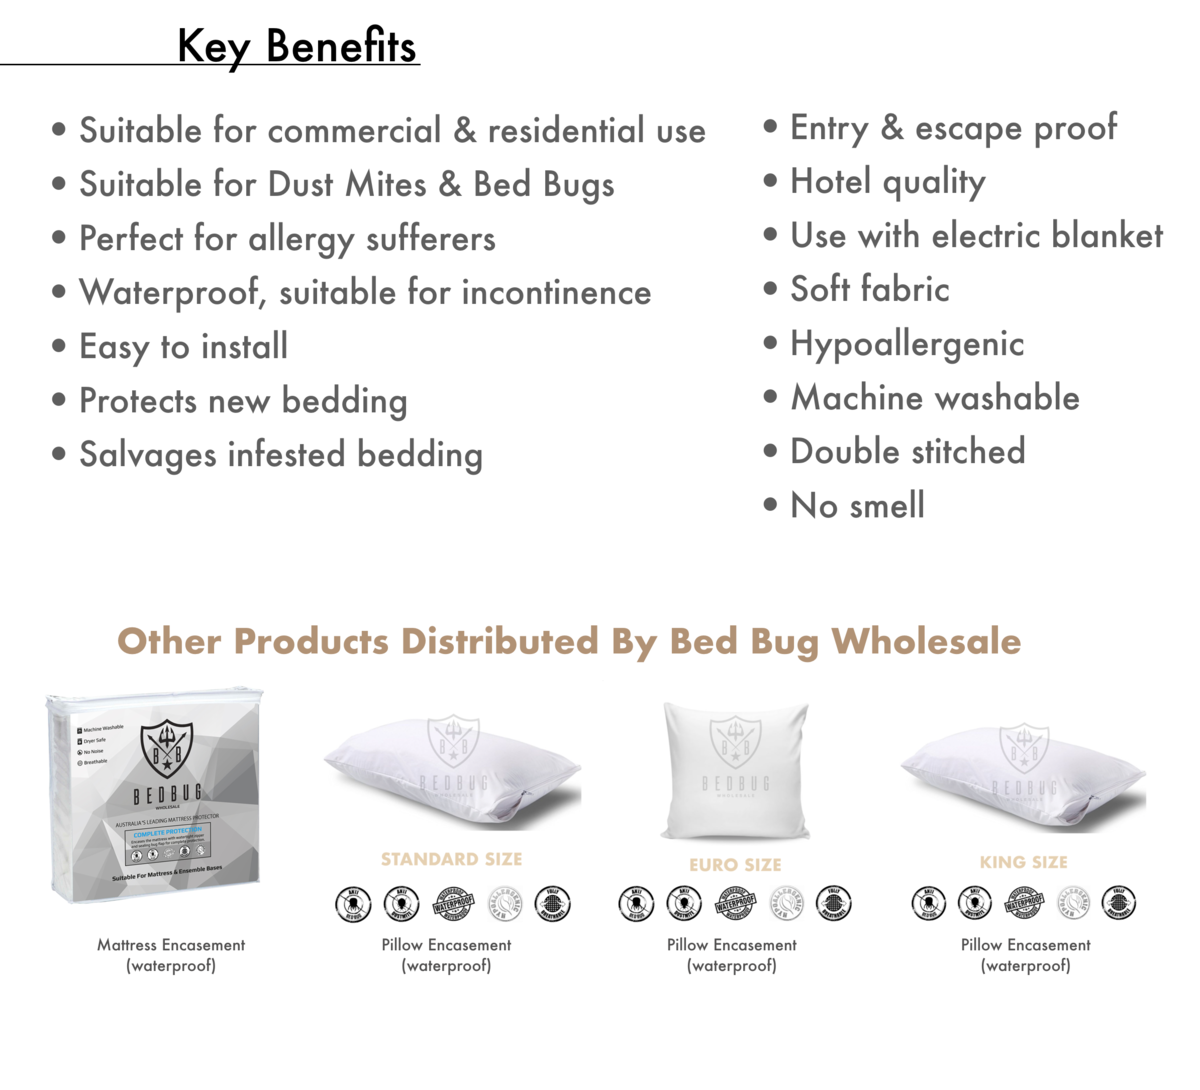 Key Bennefits Bed Bug Wholesale Allergy Cover